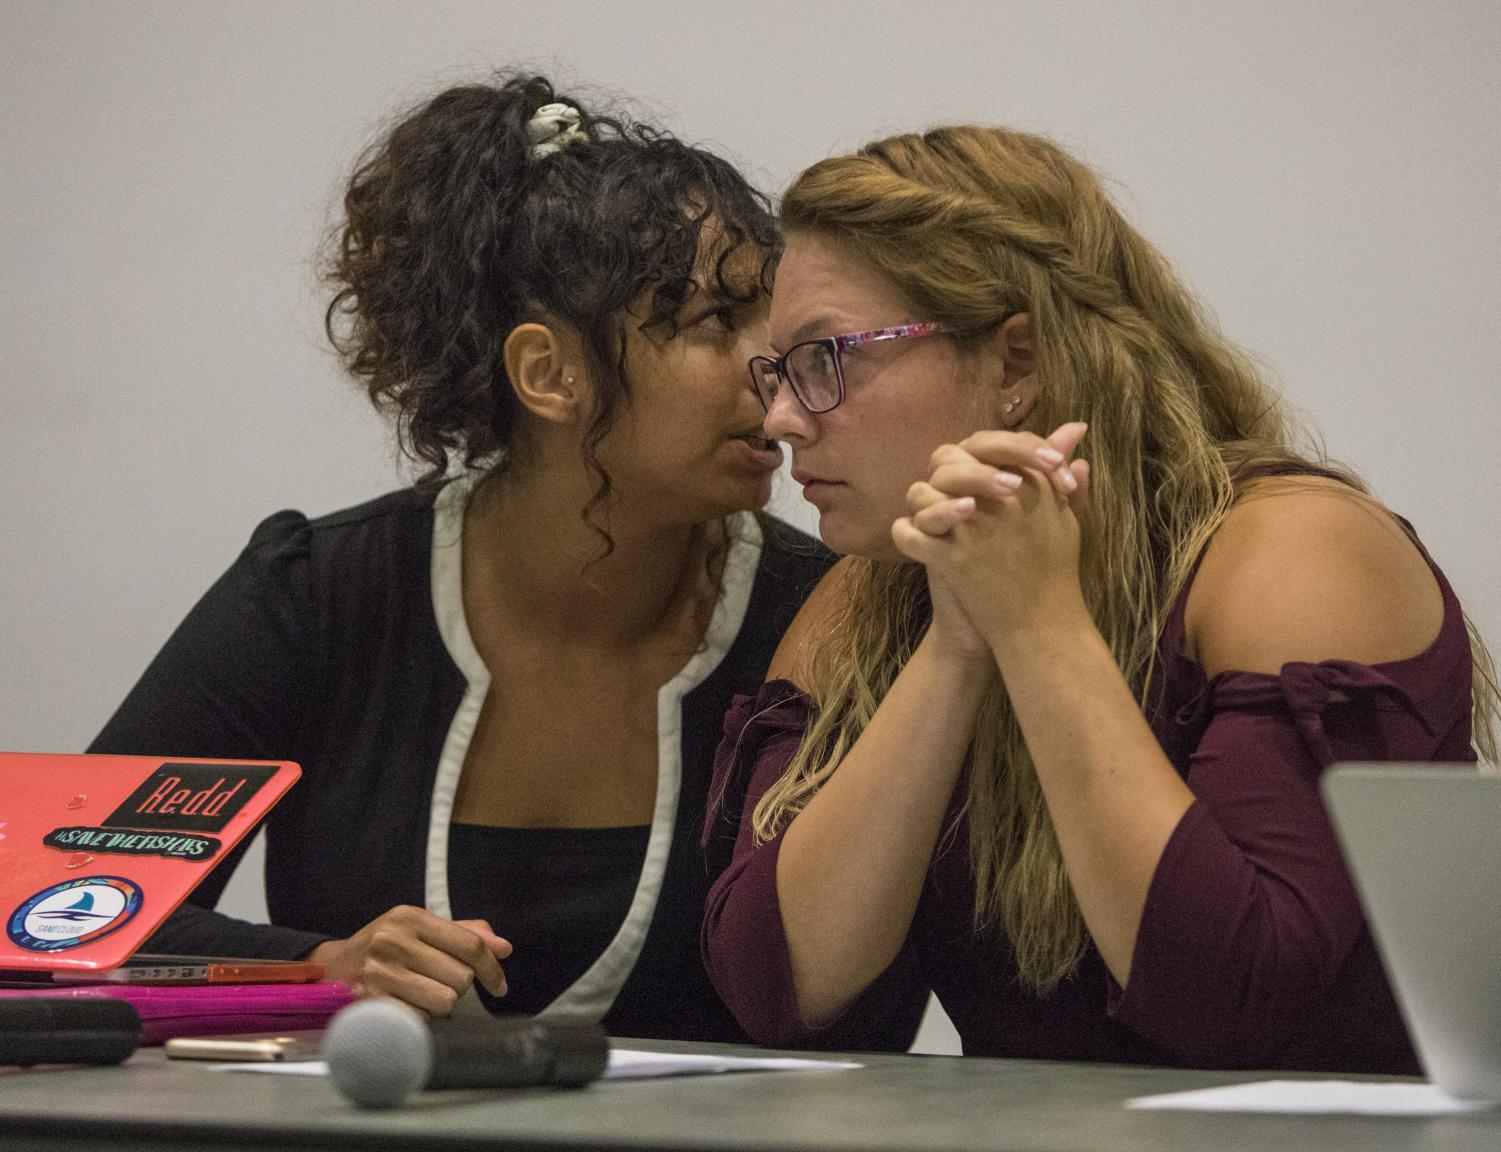 Sophia Julio, a senior studying Anthropology (left) and Jordan Coutcher, a sophomore studying Political Science, whisper while a member of the affirmative side speaks, Monday, Sept. 17, 2018, during the 8th Annual Constitution Day Debate, in Morris Library. (Corrin Hunt | @CorrinIHunt)